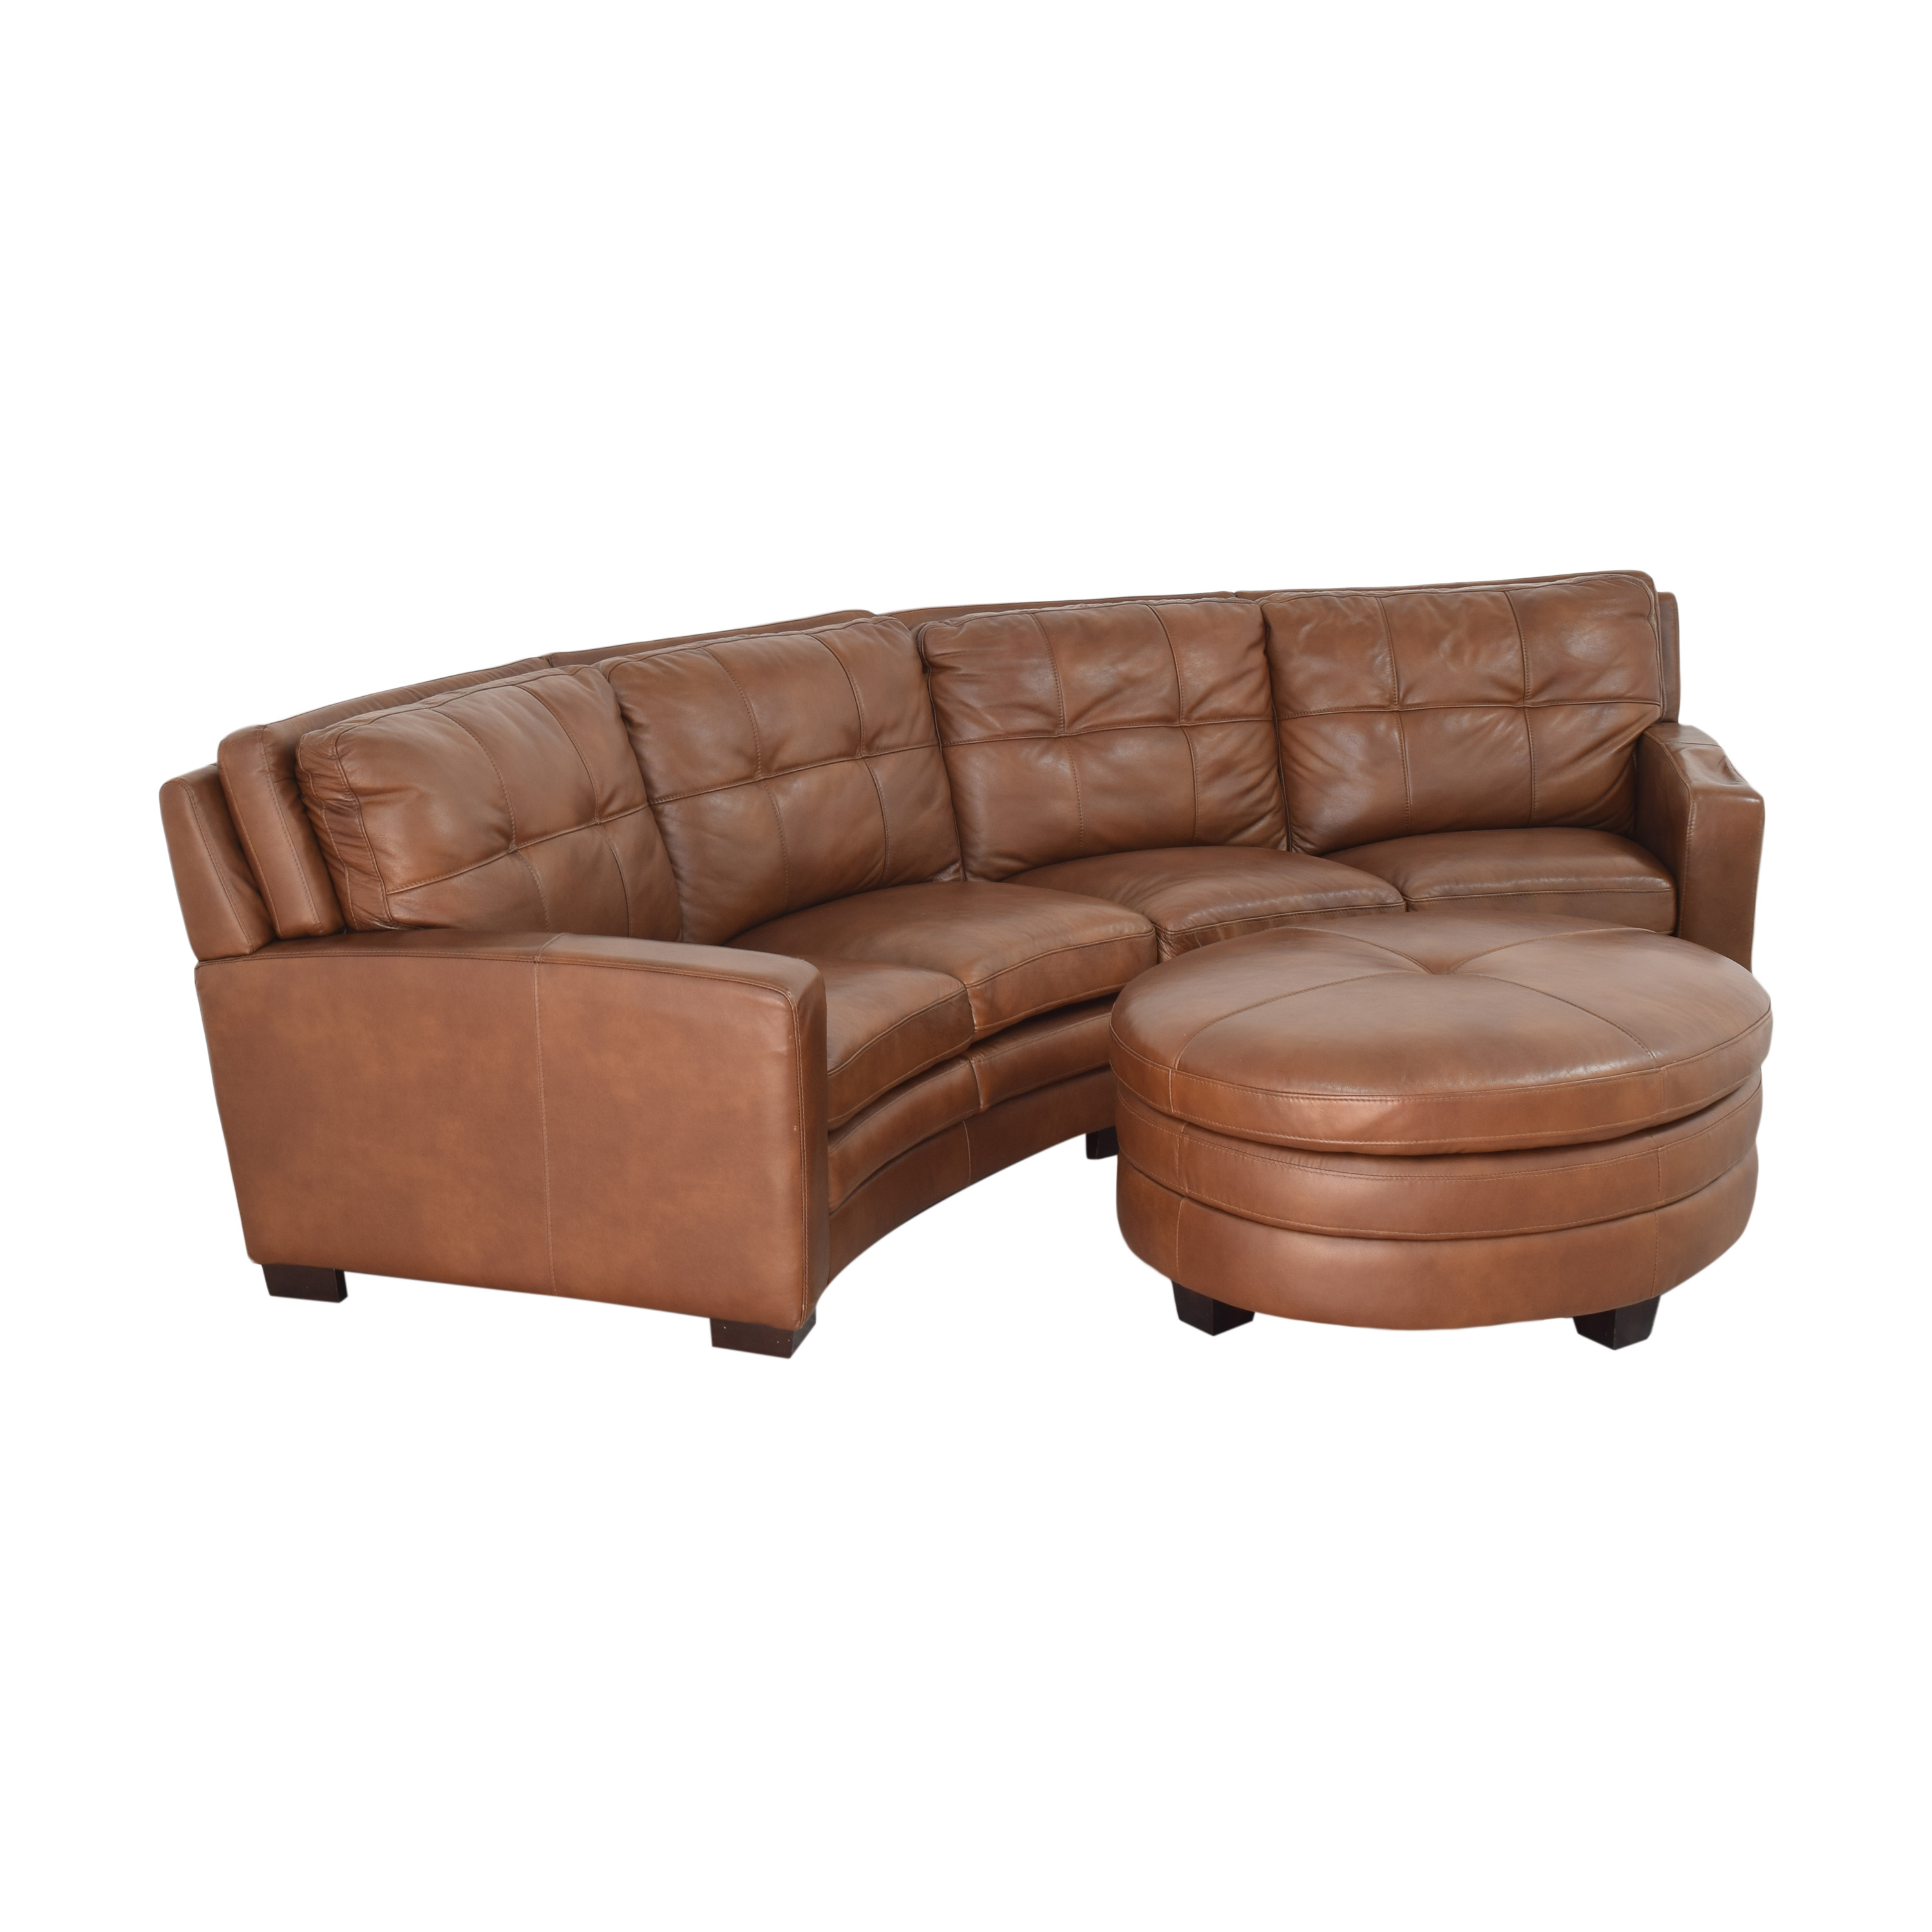 buy  Crescent Sectional Sofa with Ottoman online